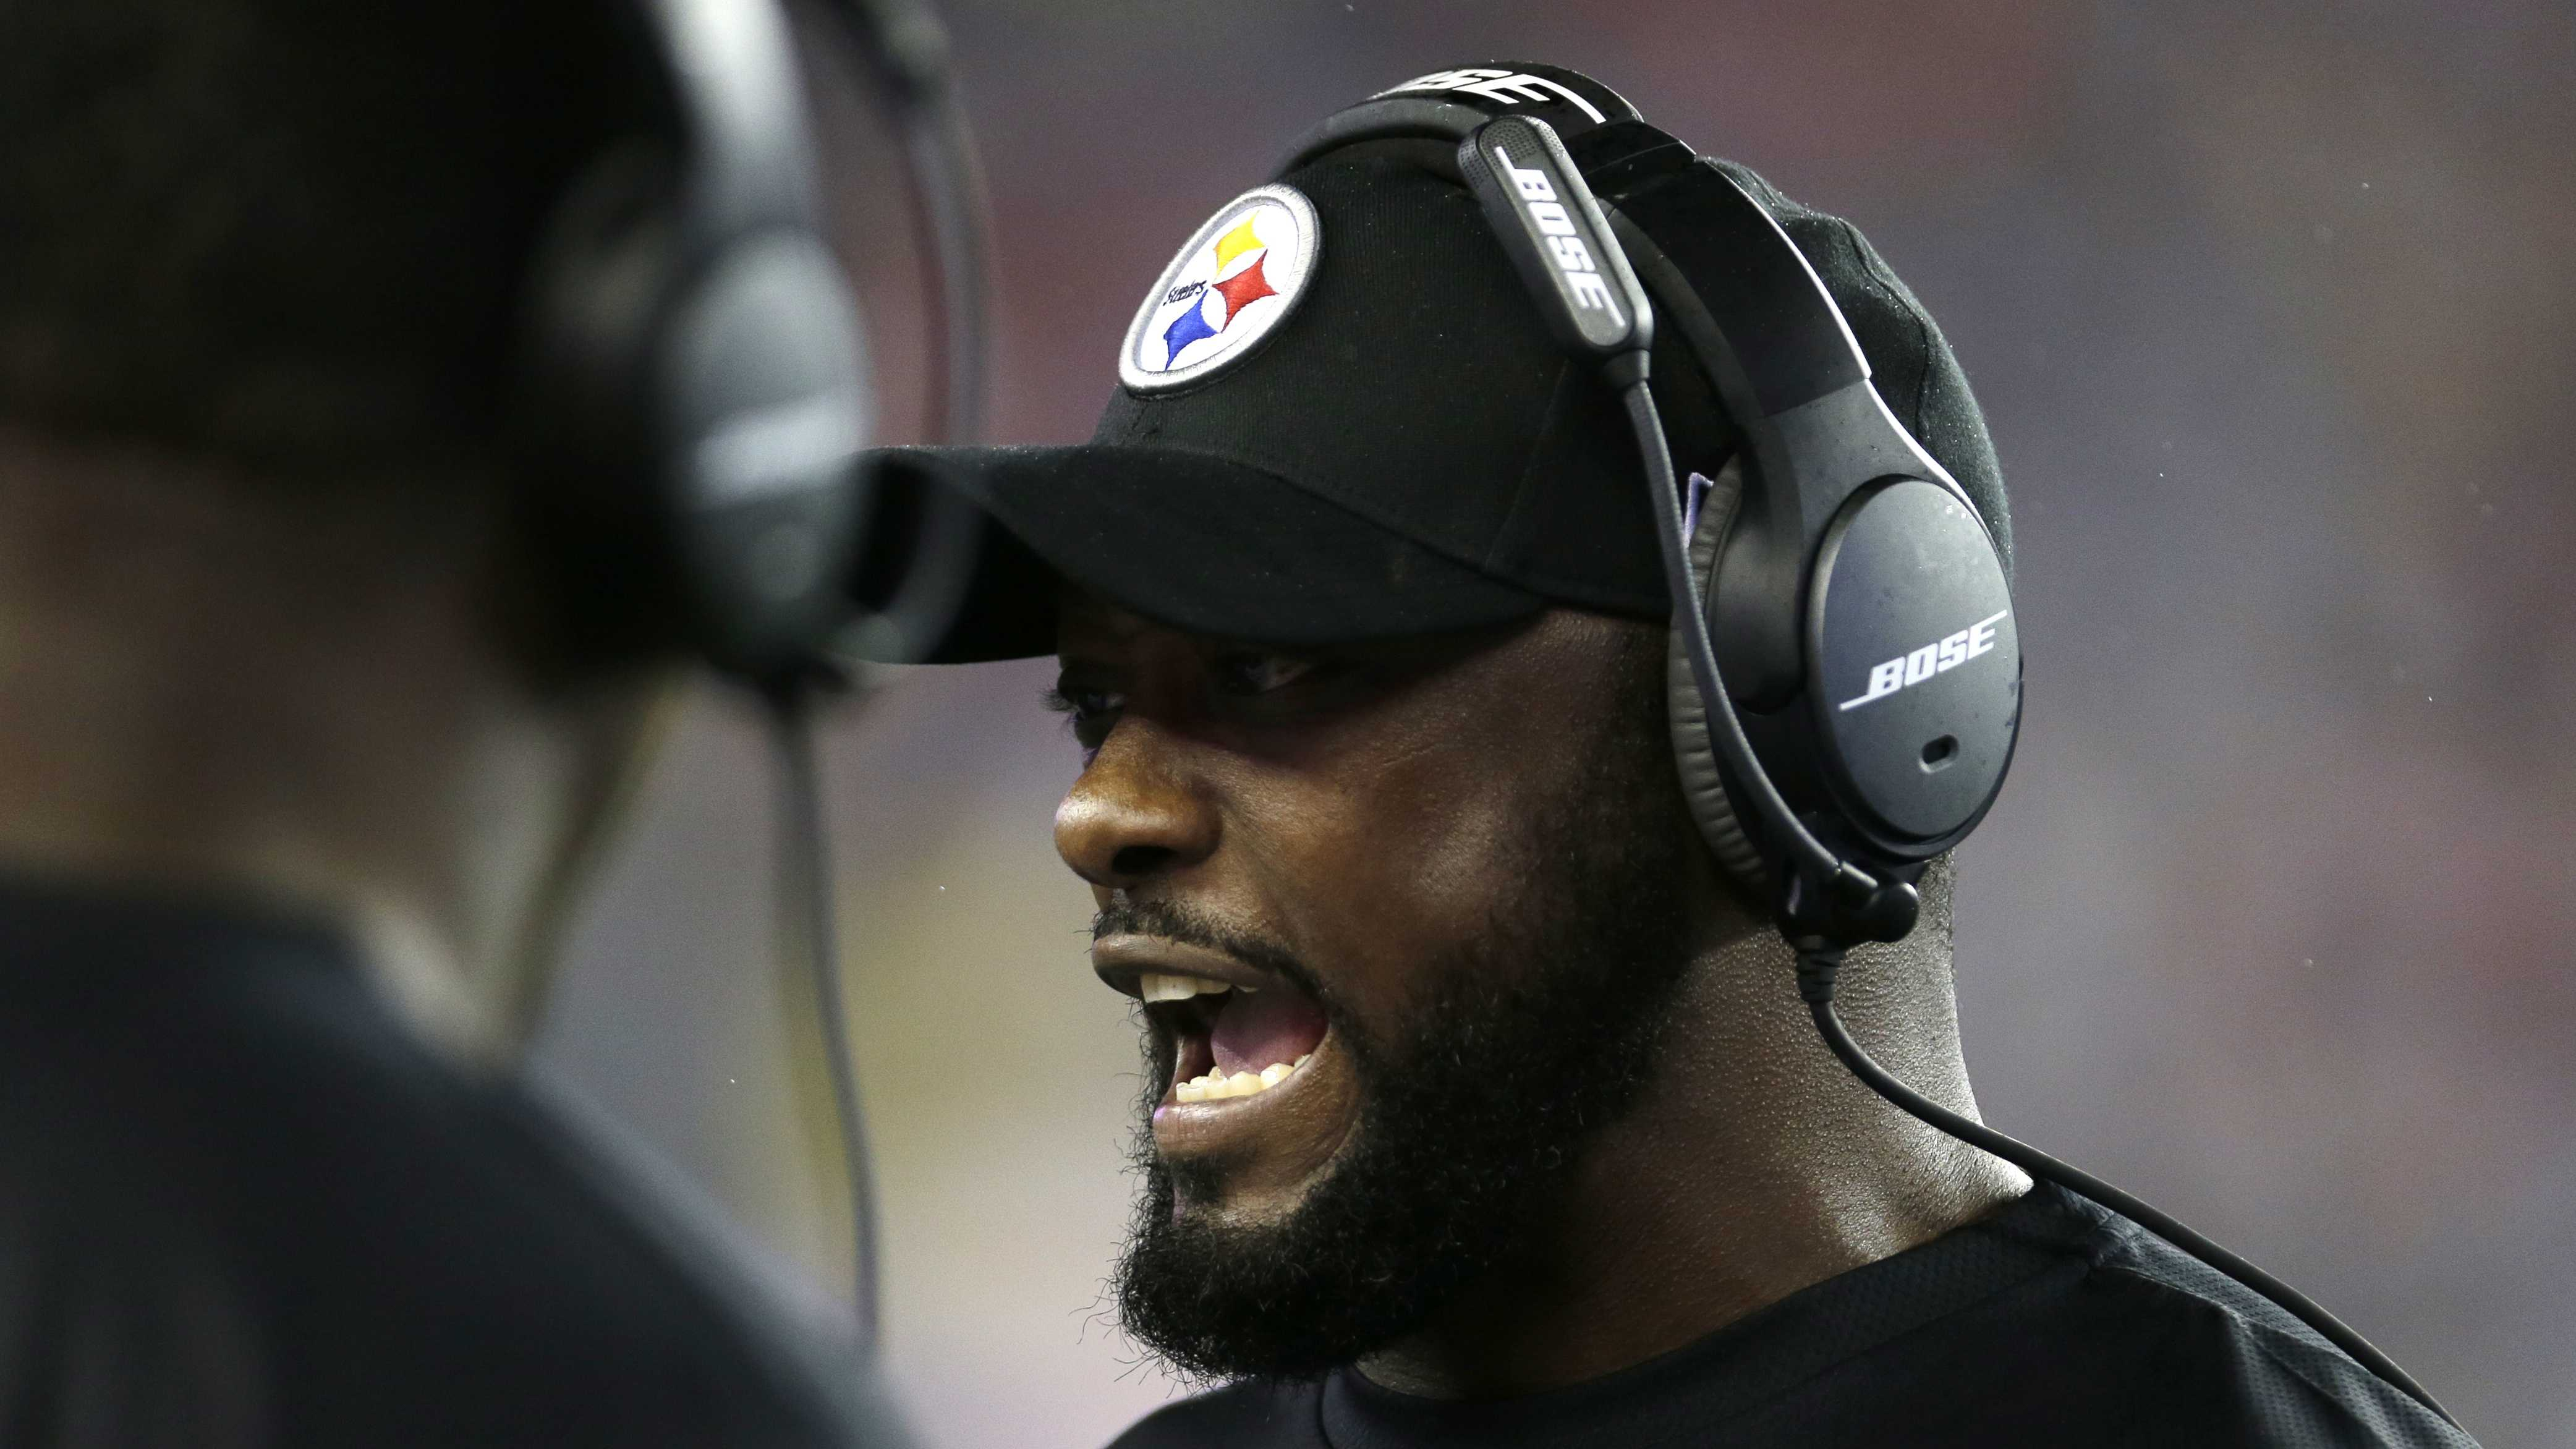 Pittsburgh Steelers head coach Mike Tomlin speaks to his team on the sideline in the second half of an NFL football game against the New England Patriots, Thursday, Sept. 10, 2015, in Foxborough, Mass.